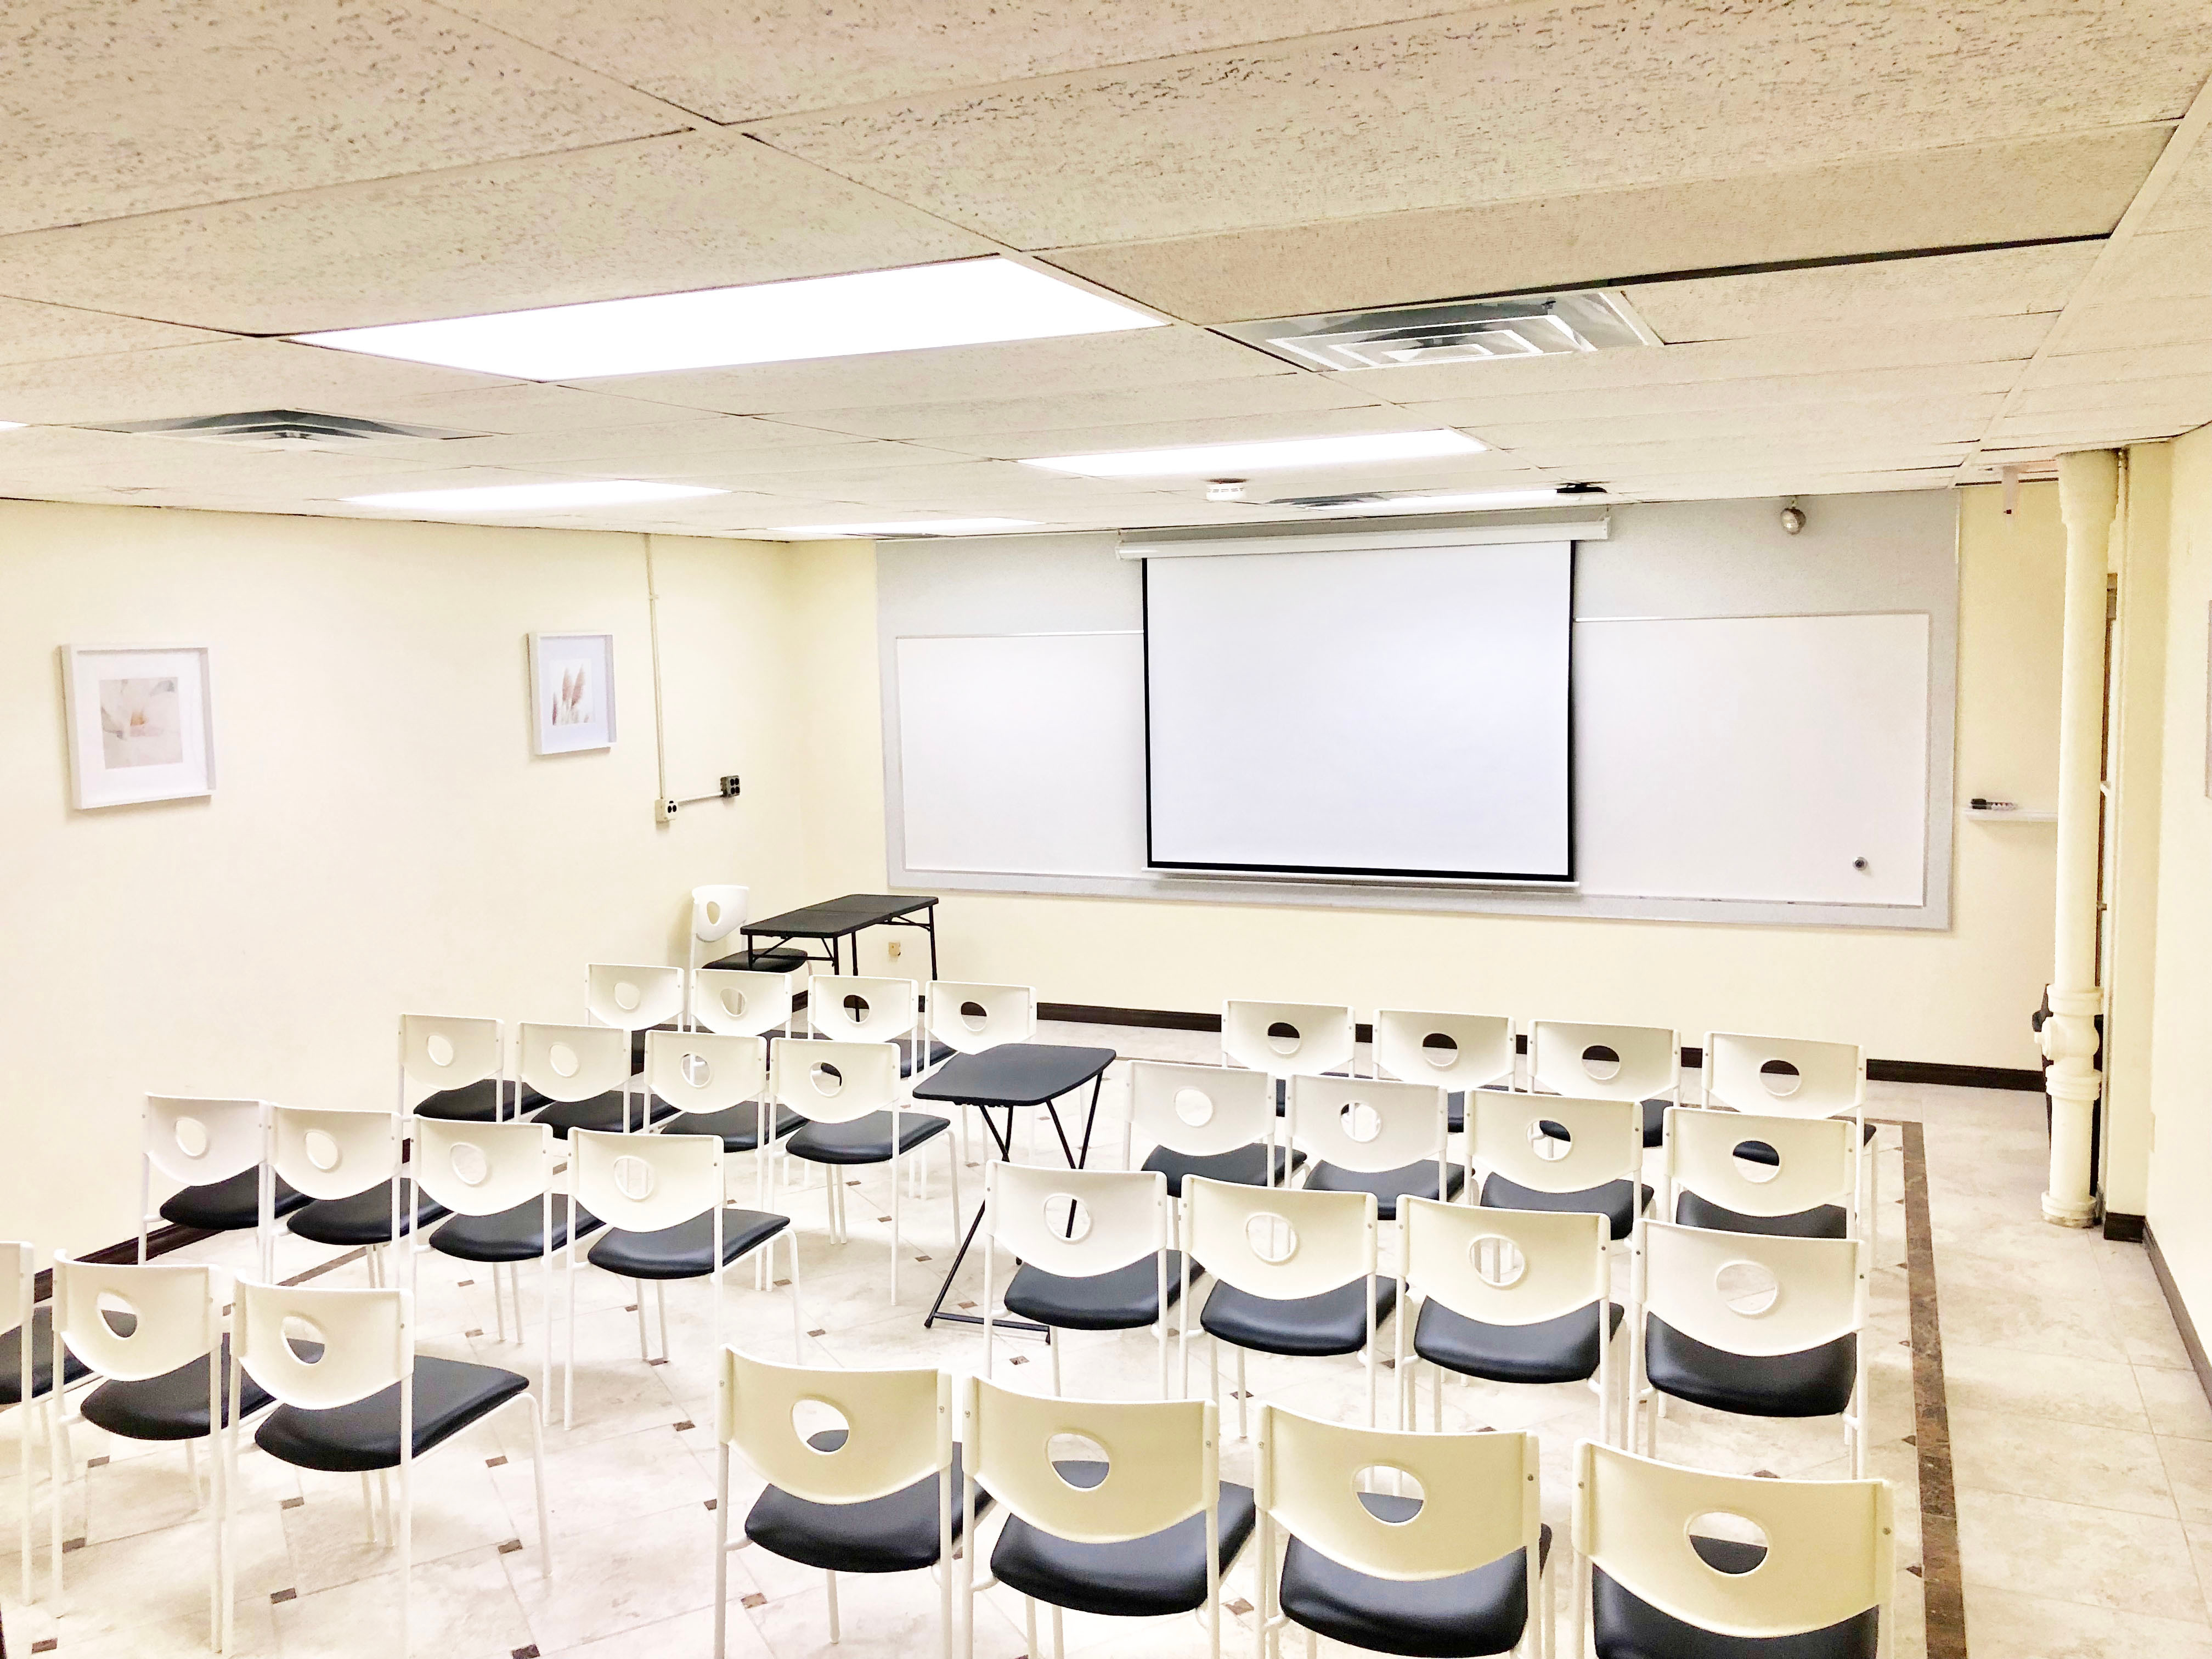 Classroom for 50